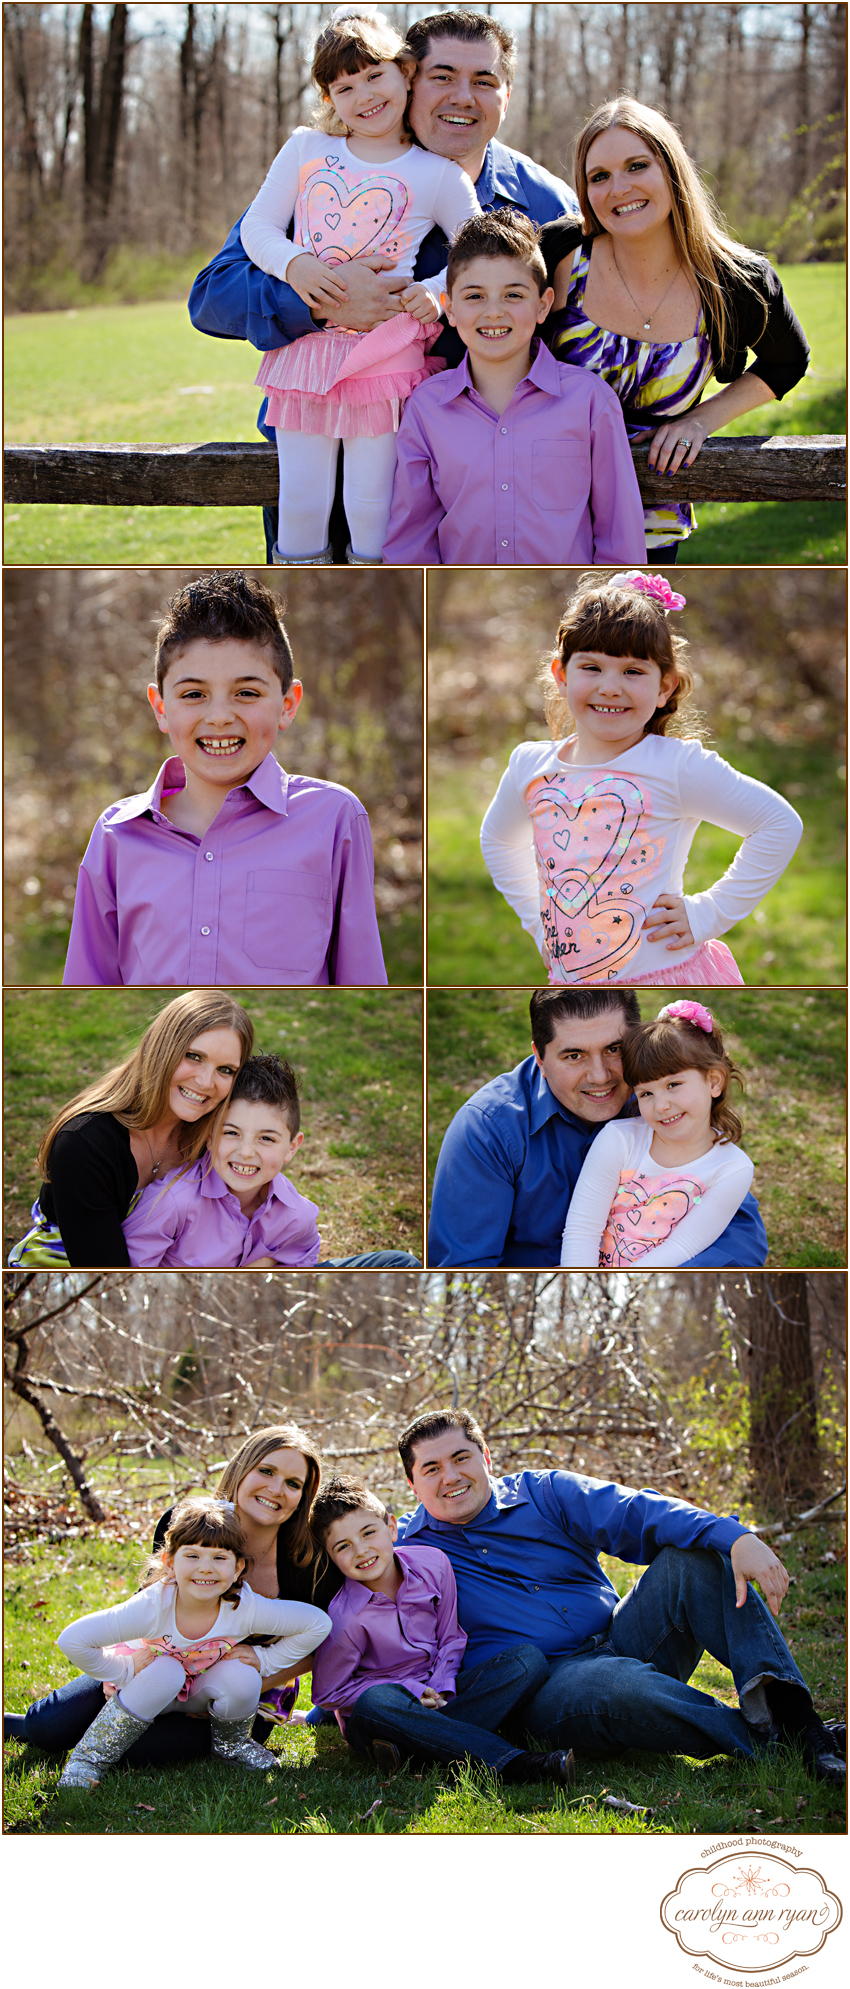 NC Child and Family Photographer, Carolyn Ann Ryan, captures beautiful family portraits in Charlotte, NC